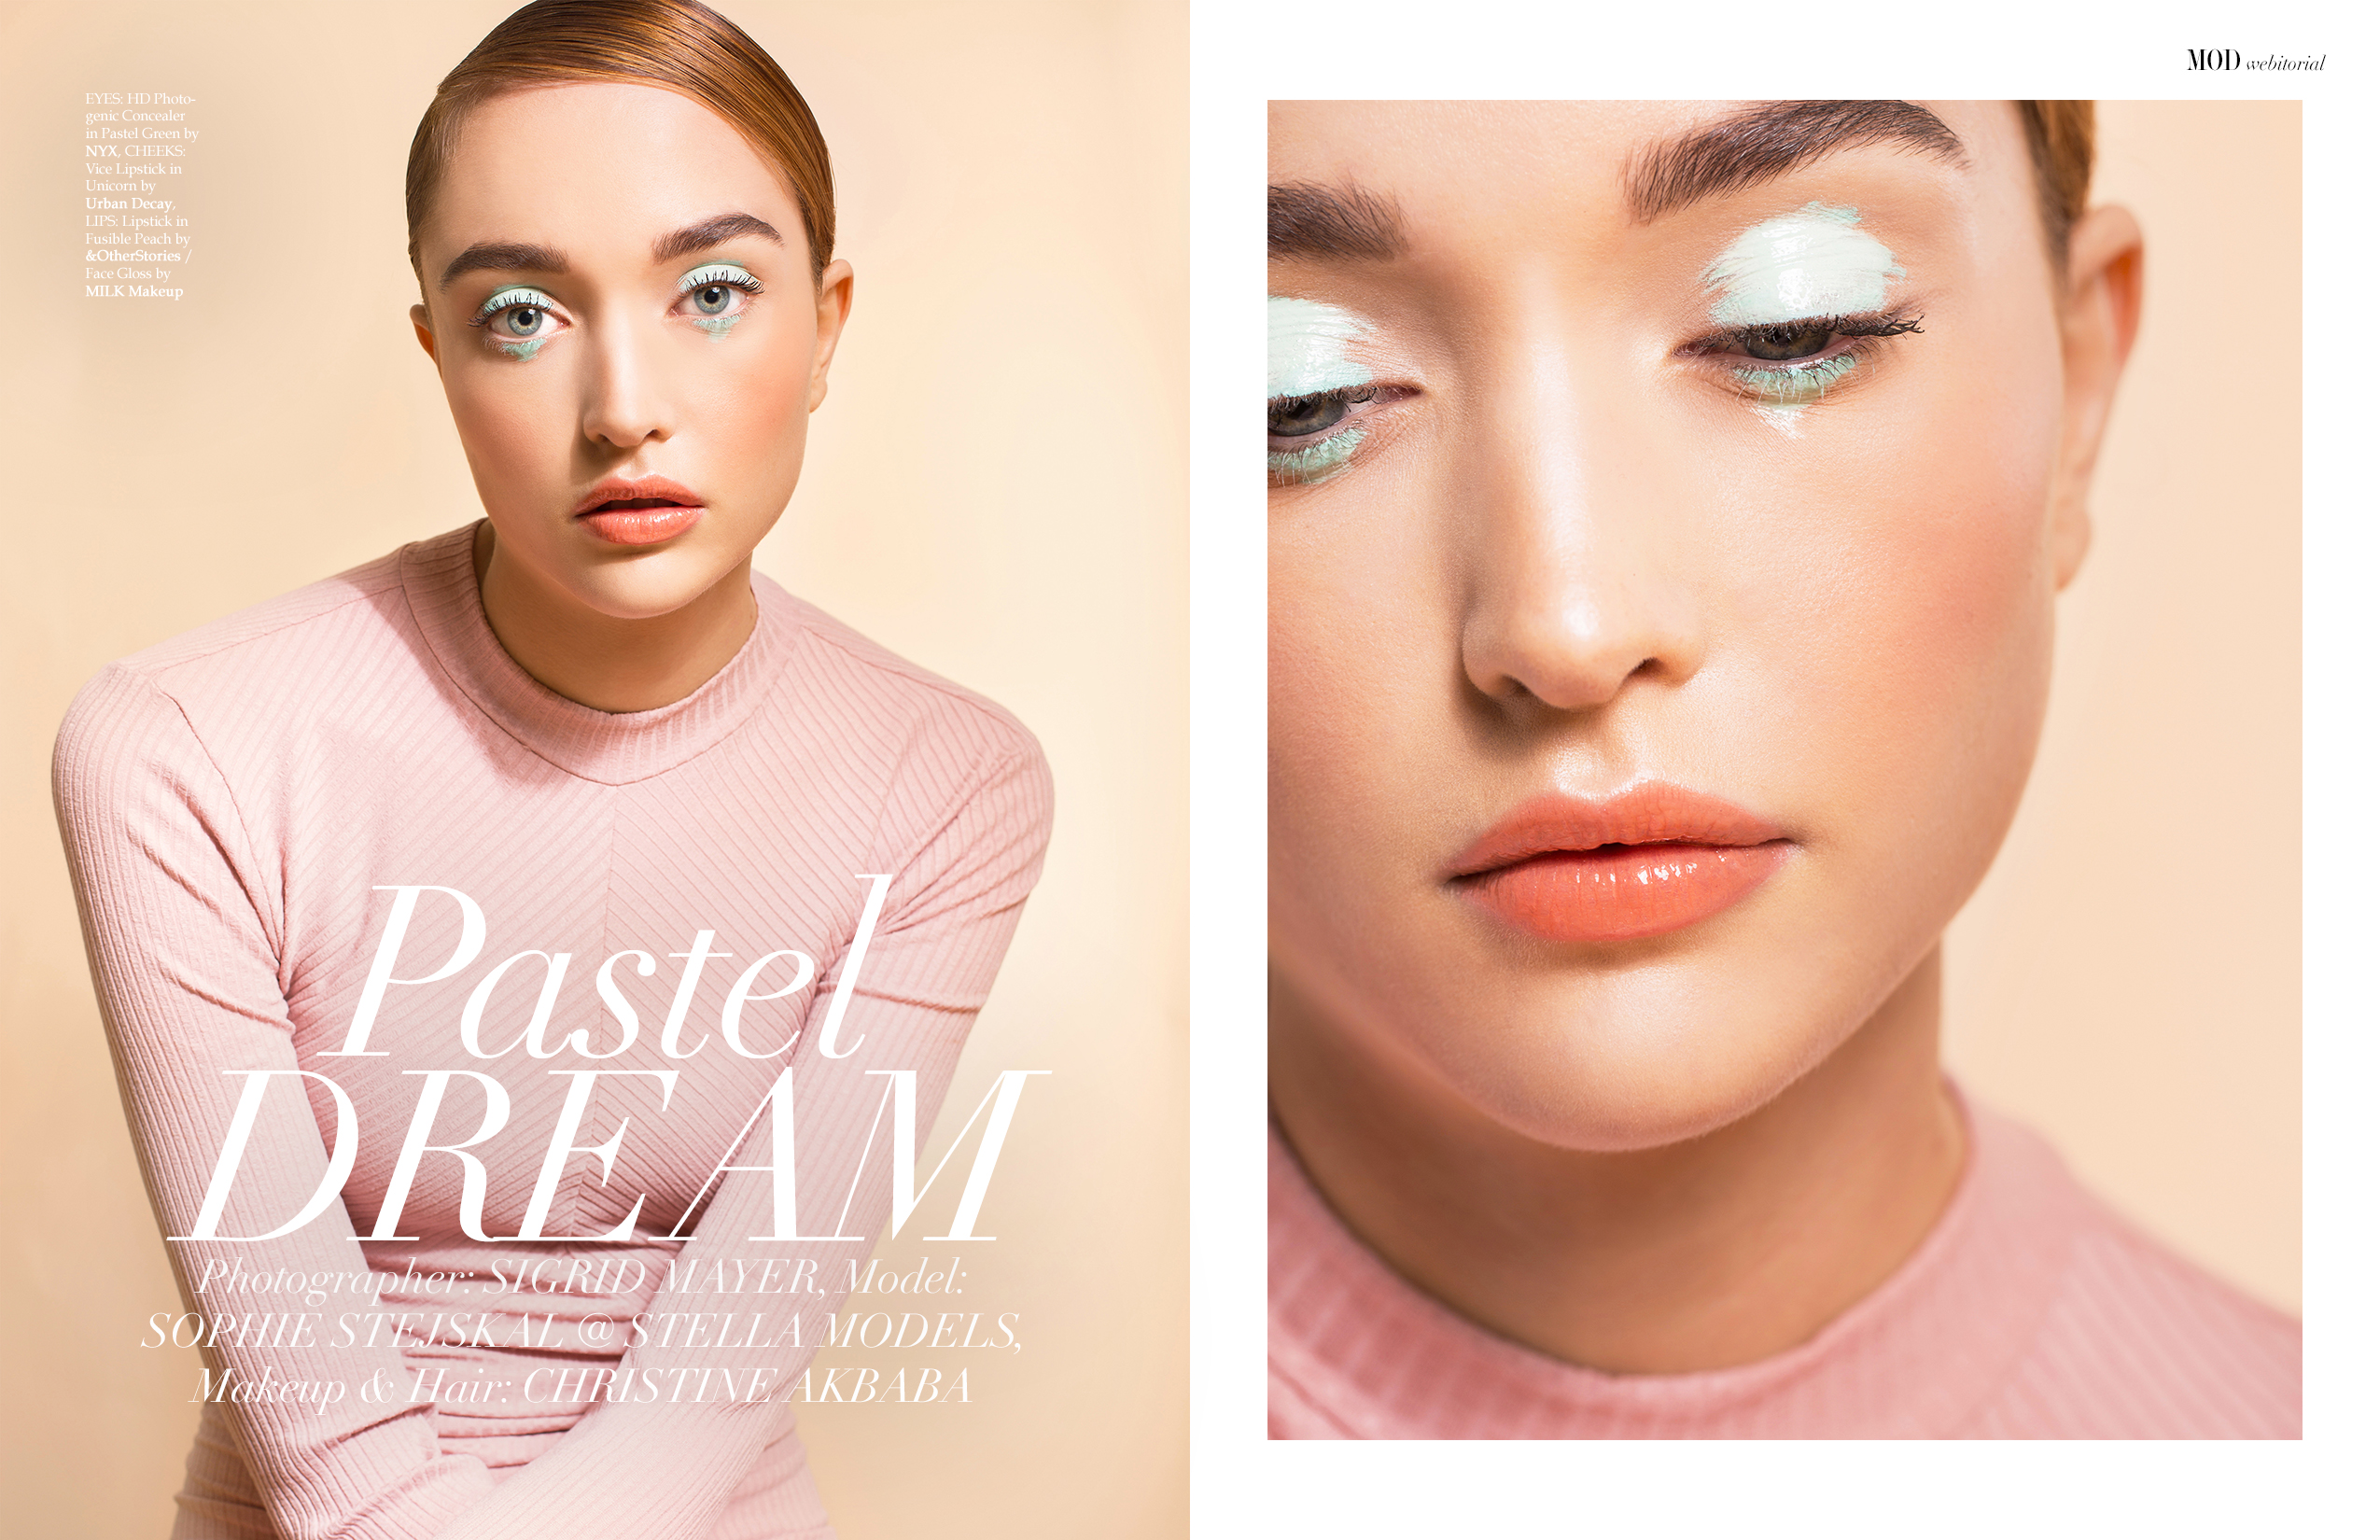 Pastel Dream by Sigrid Mayer MOD Magazine Webitorial